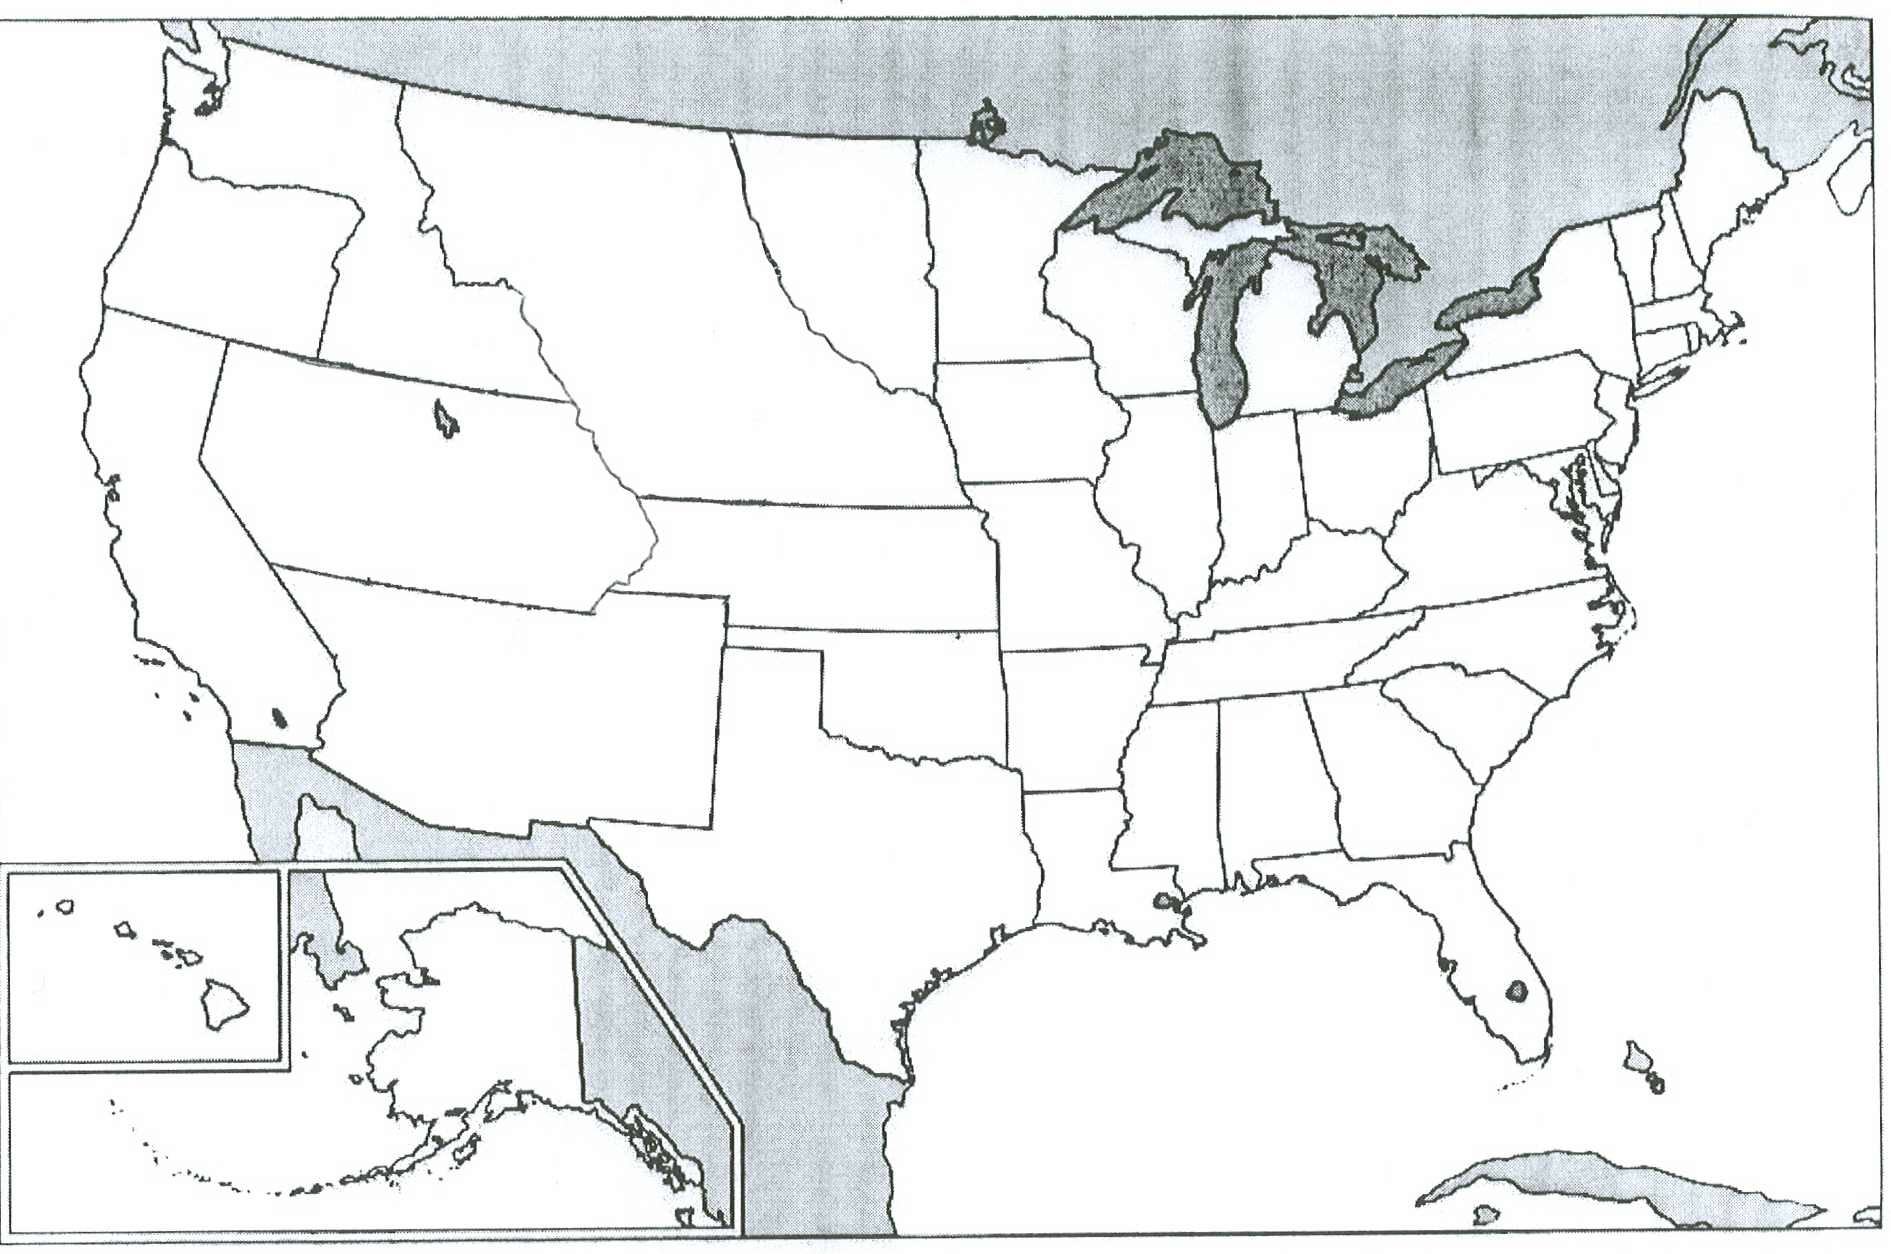 United States Map With State Names USA States On The Map USA - Us railroad map 1860